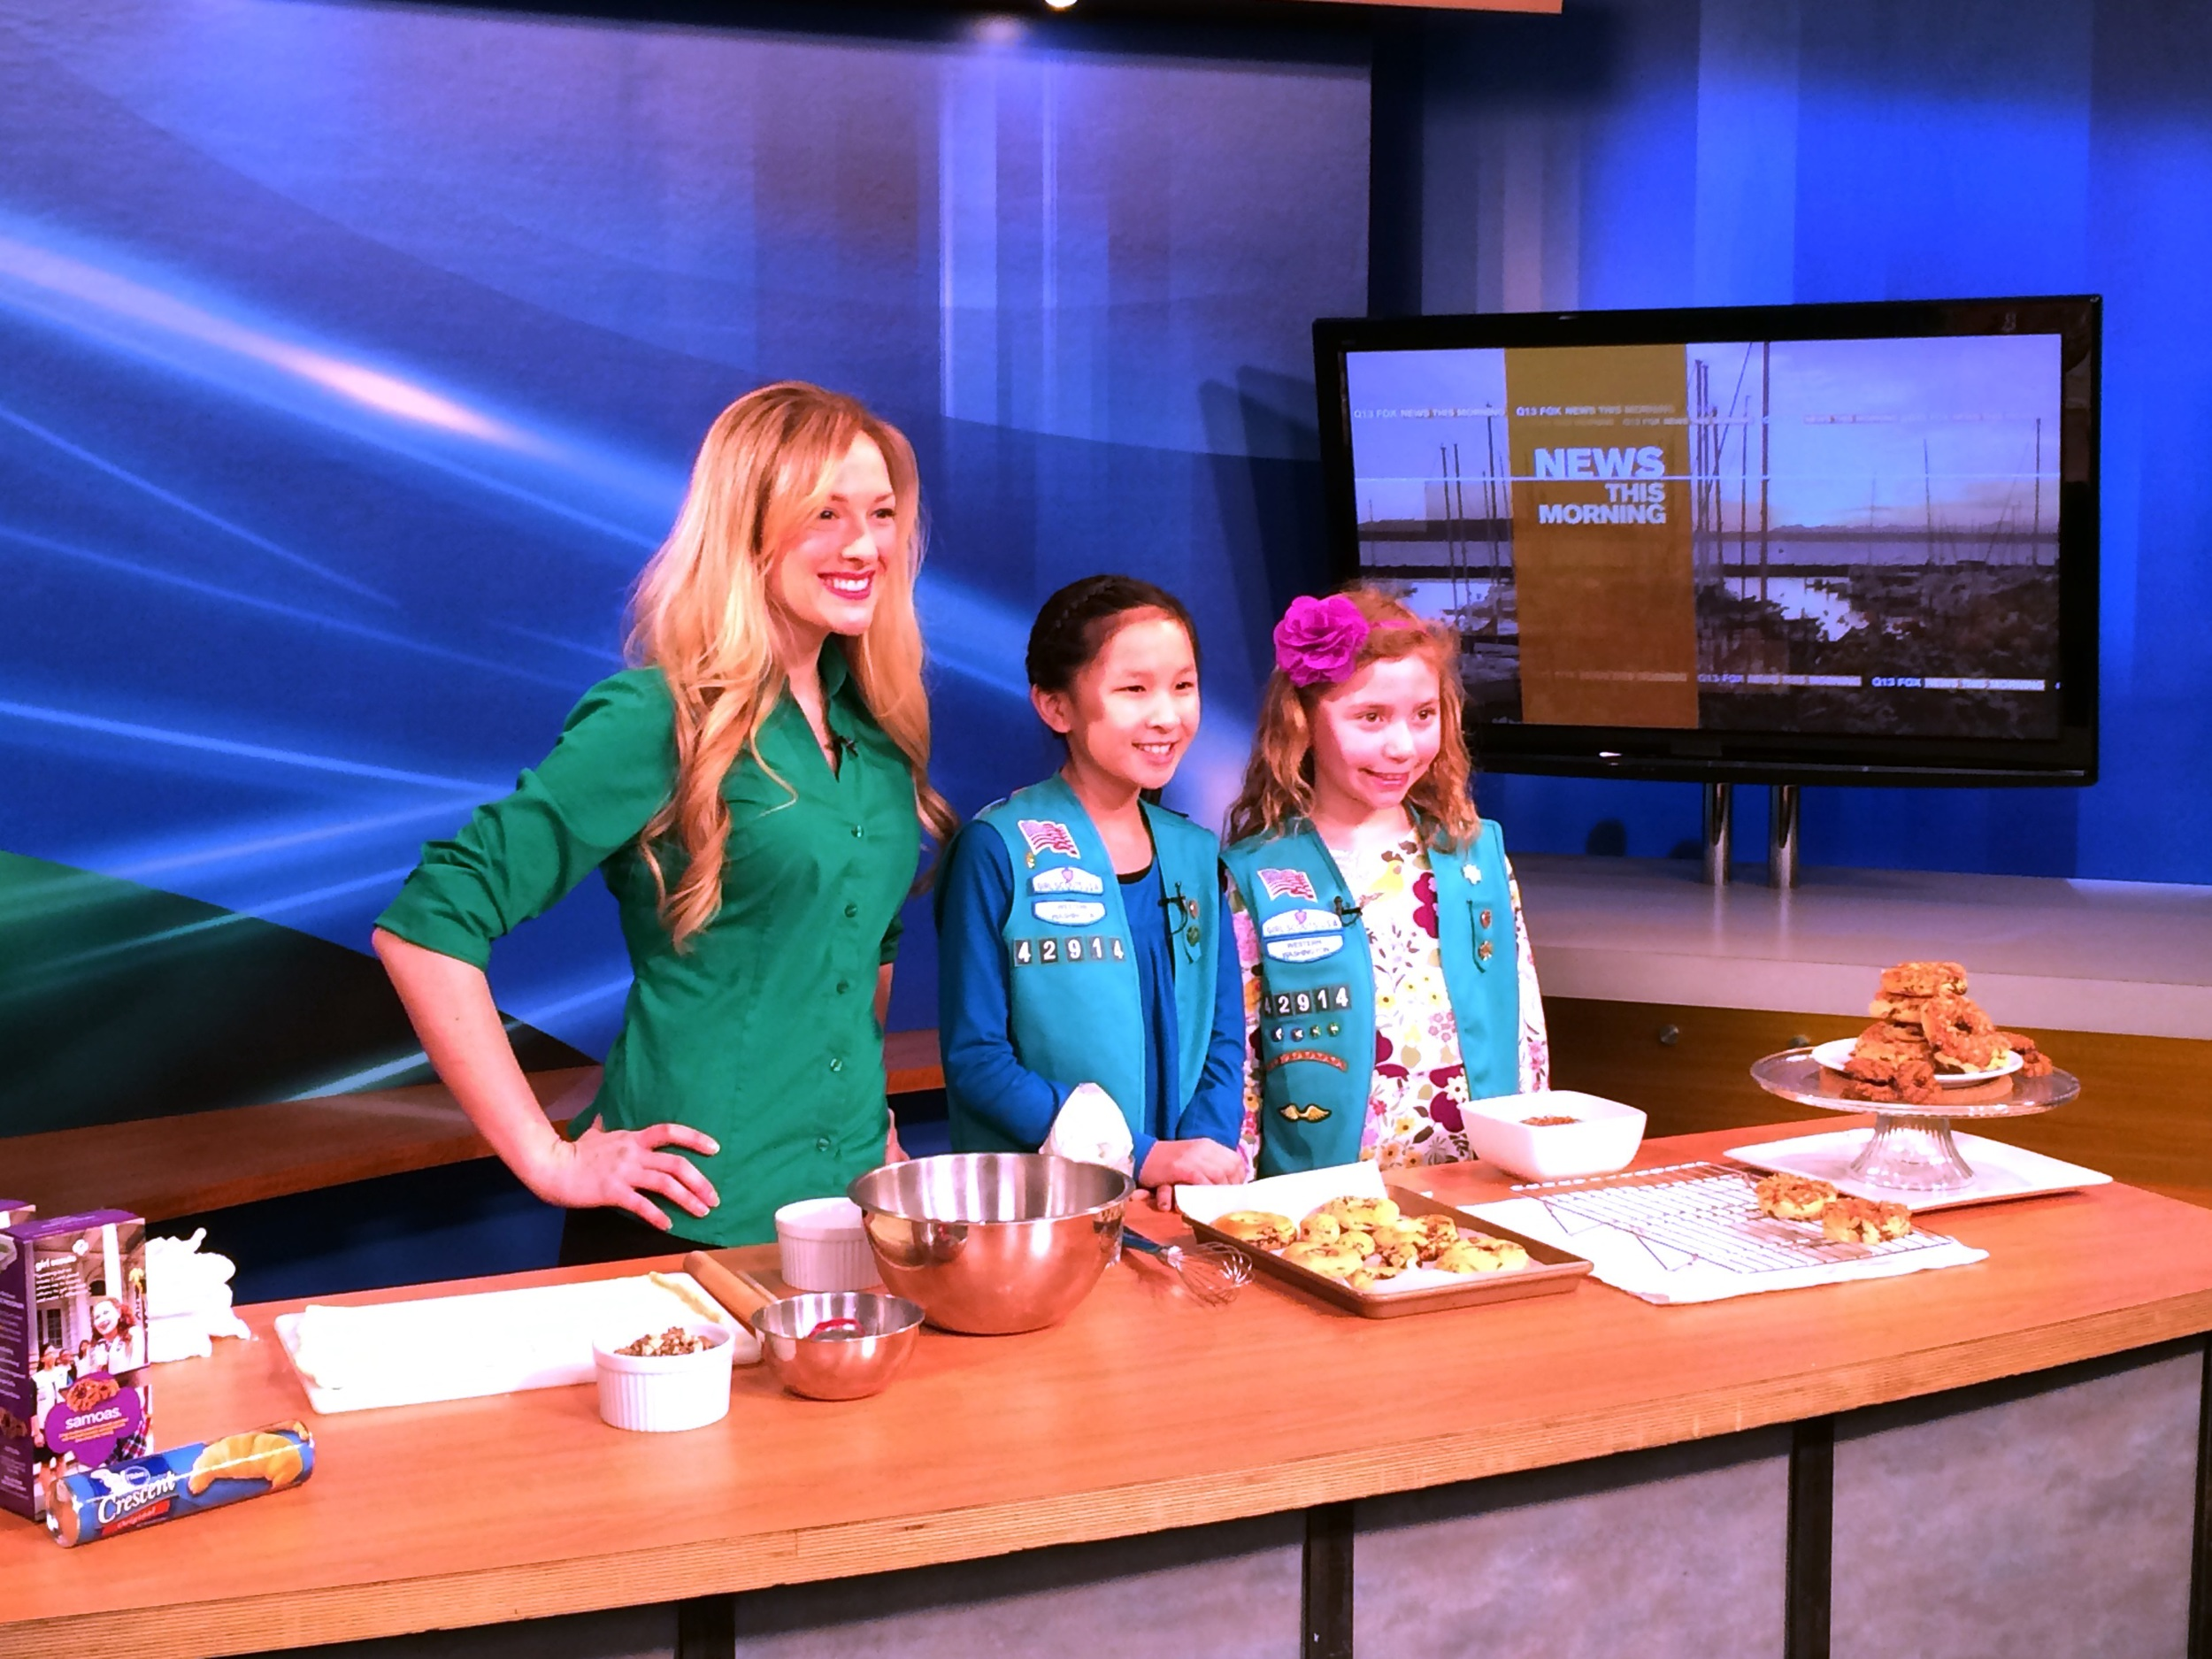 Siiri Sampson, Seattle Food Blogger and Winner of the 2014 Girl Scouts of Western Washington Cookie Recipe Contest